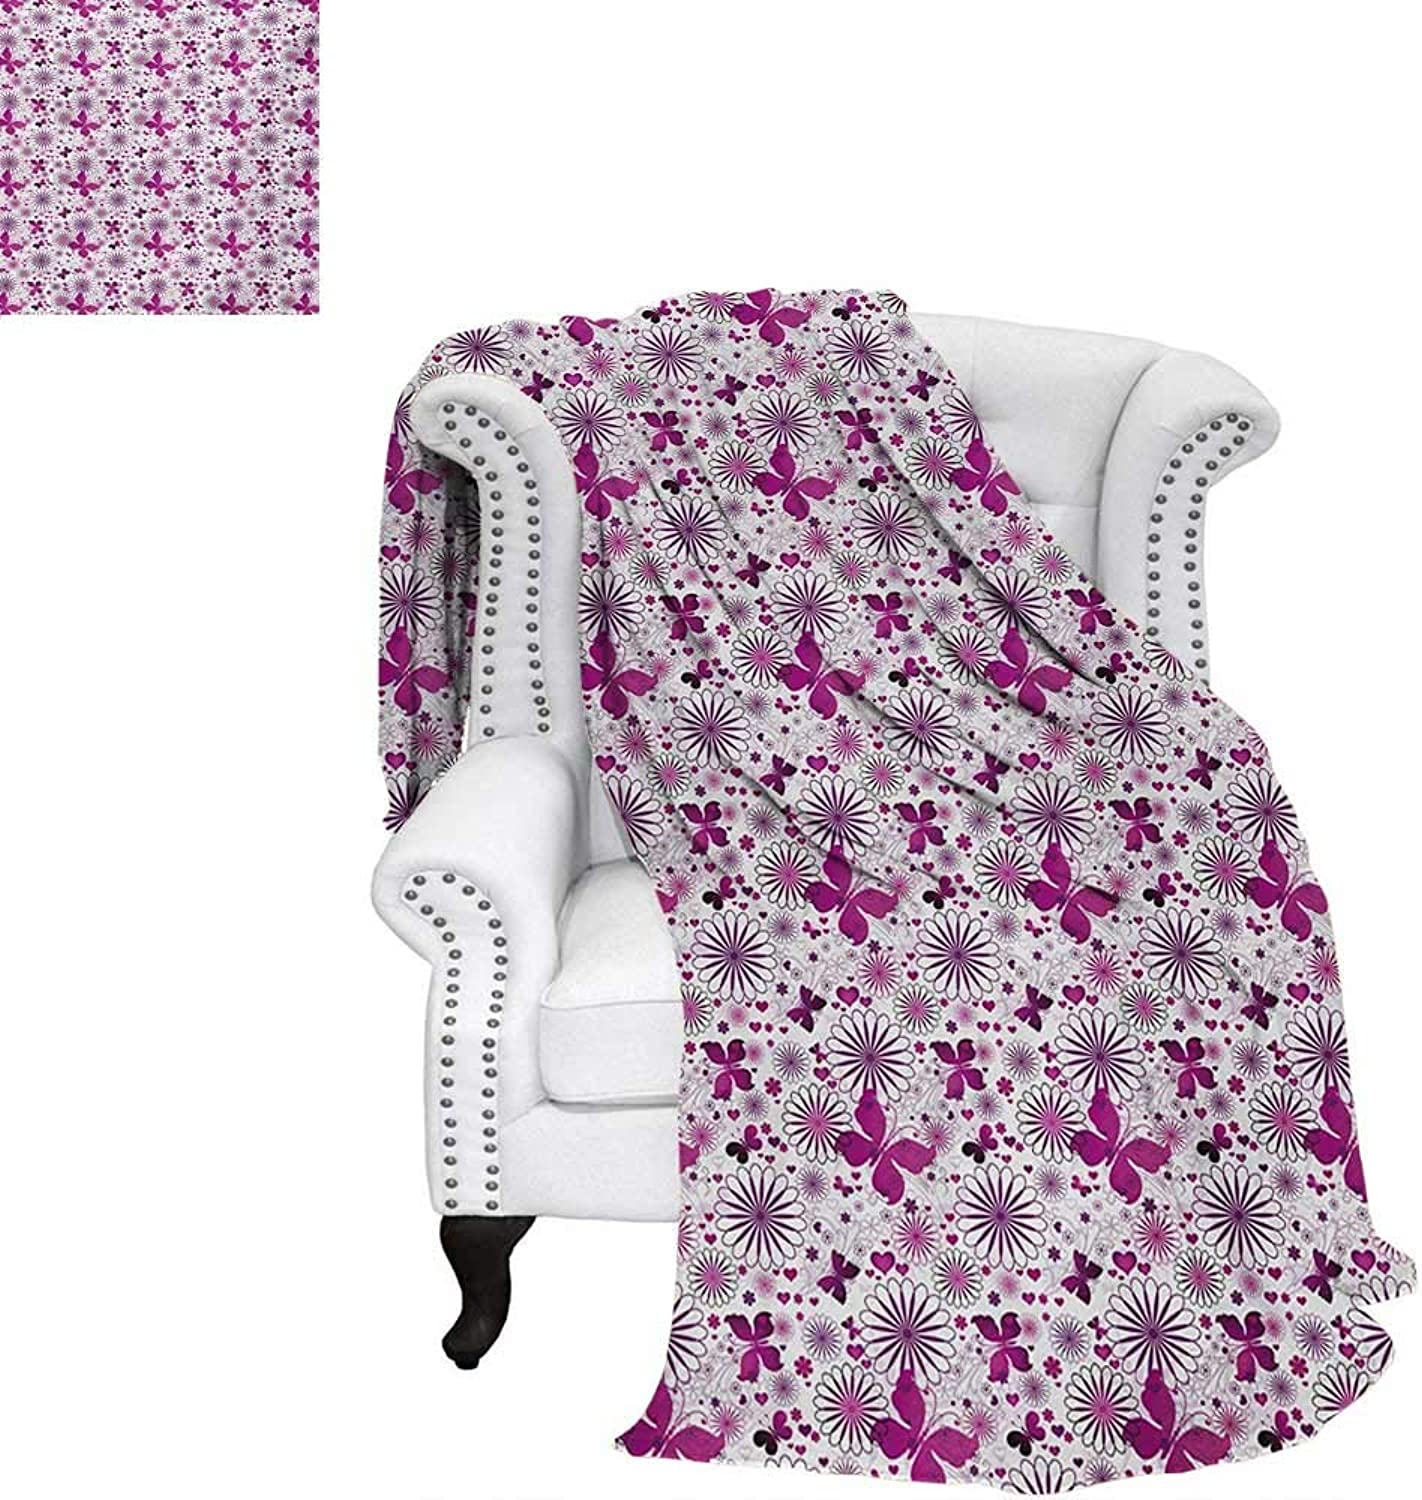 Warmfamily Purple Warm Microfiber All Season Blanket for Bed or Couch Amgoldus Butterflies Hearts and Flower Blooms Celebration of Valentines Day Throw Blanket 62 x60  Fushcia purple White